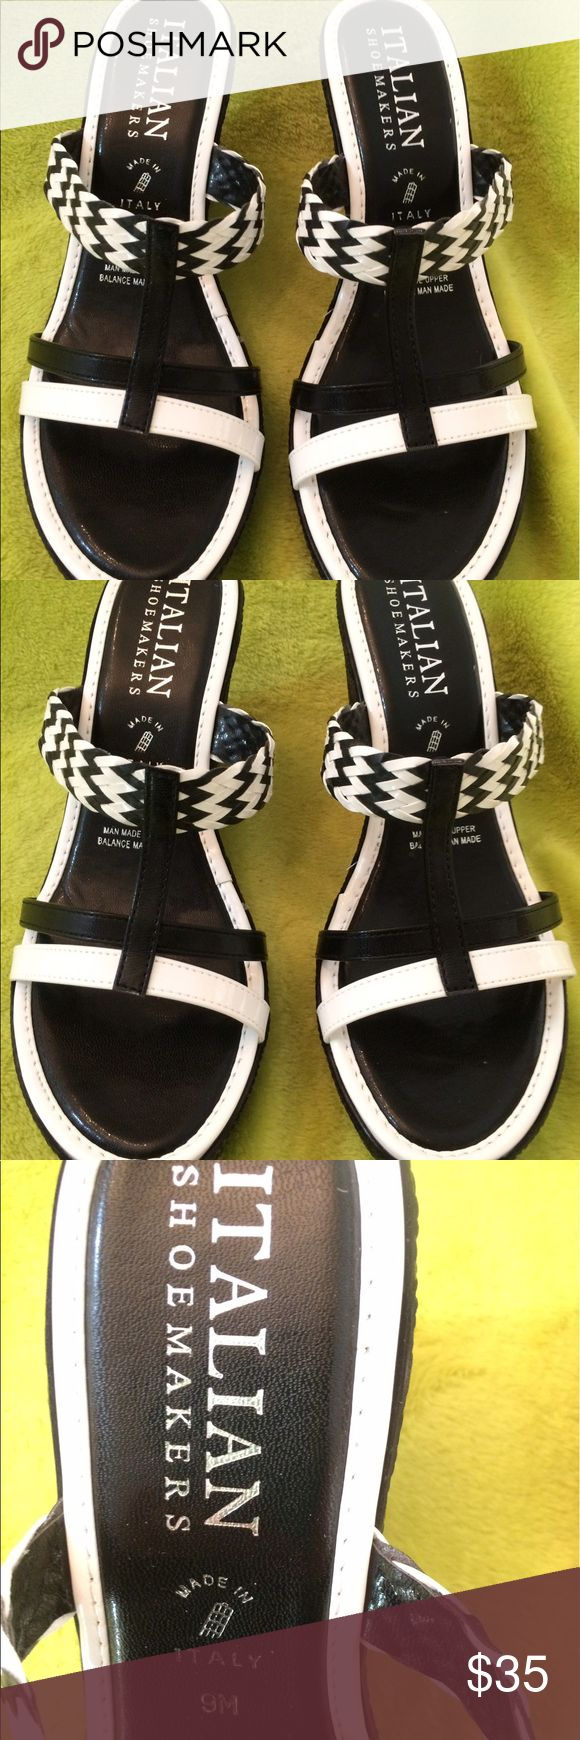 "Black and White Strappy wedge sandal Italian Shoemaker leather upper. Black and white in color. 4"" wedge. Faux weave look. NEVER worn Italian Shoemakers Shoes Espadrilles"